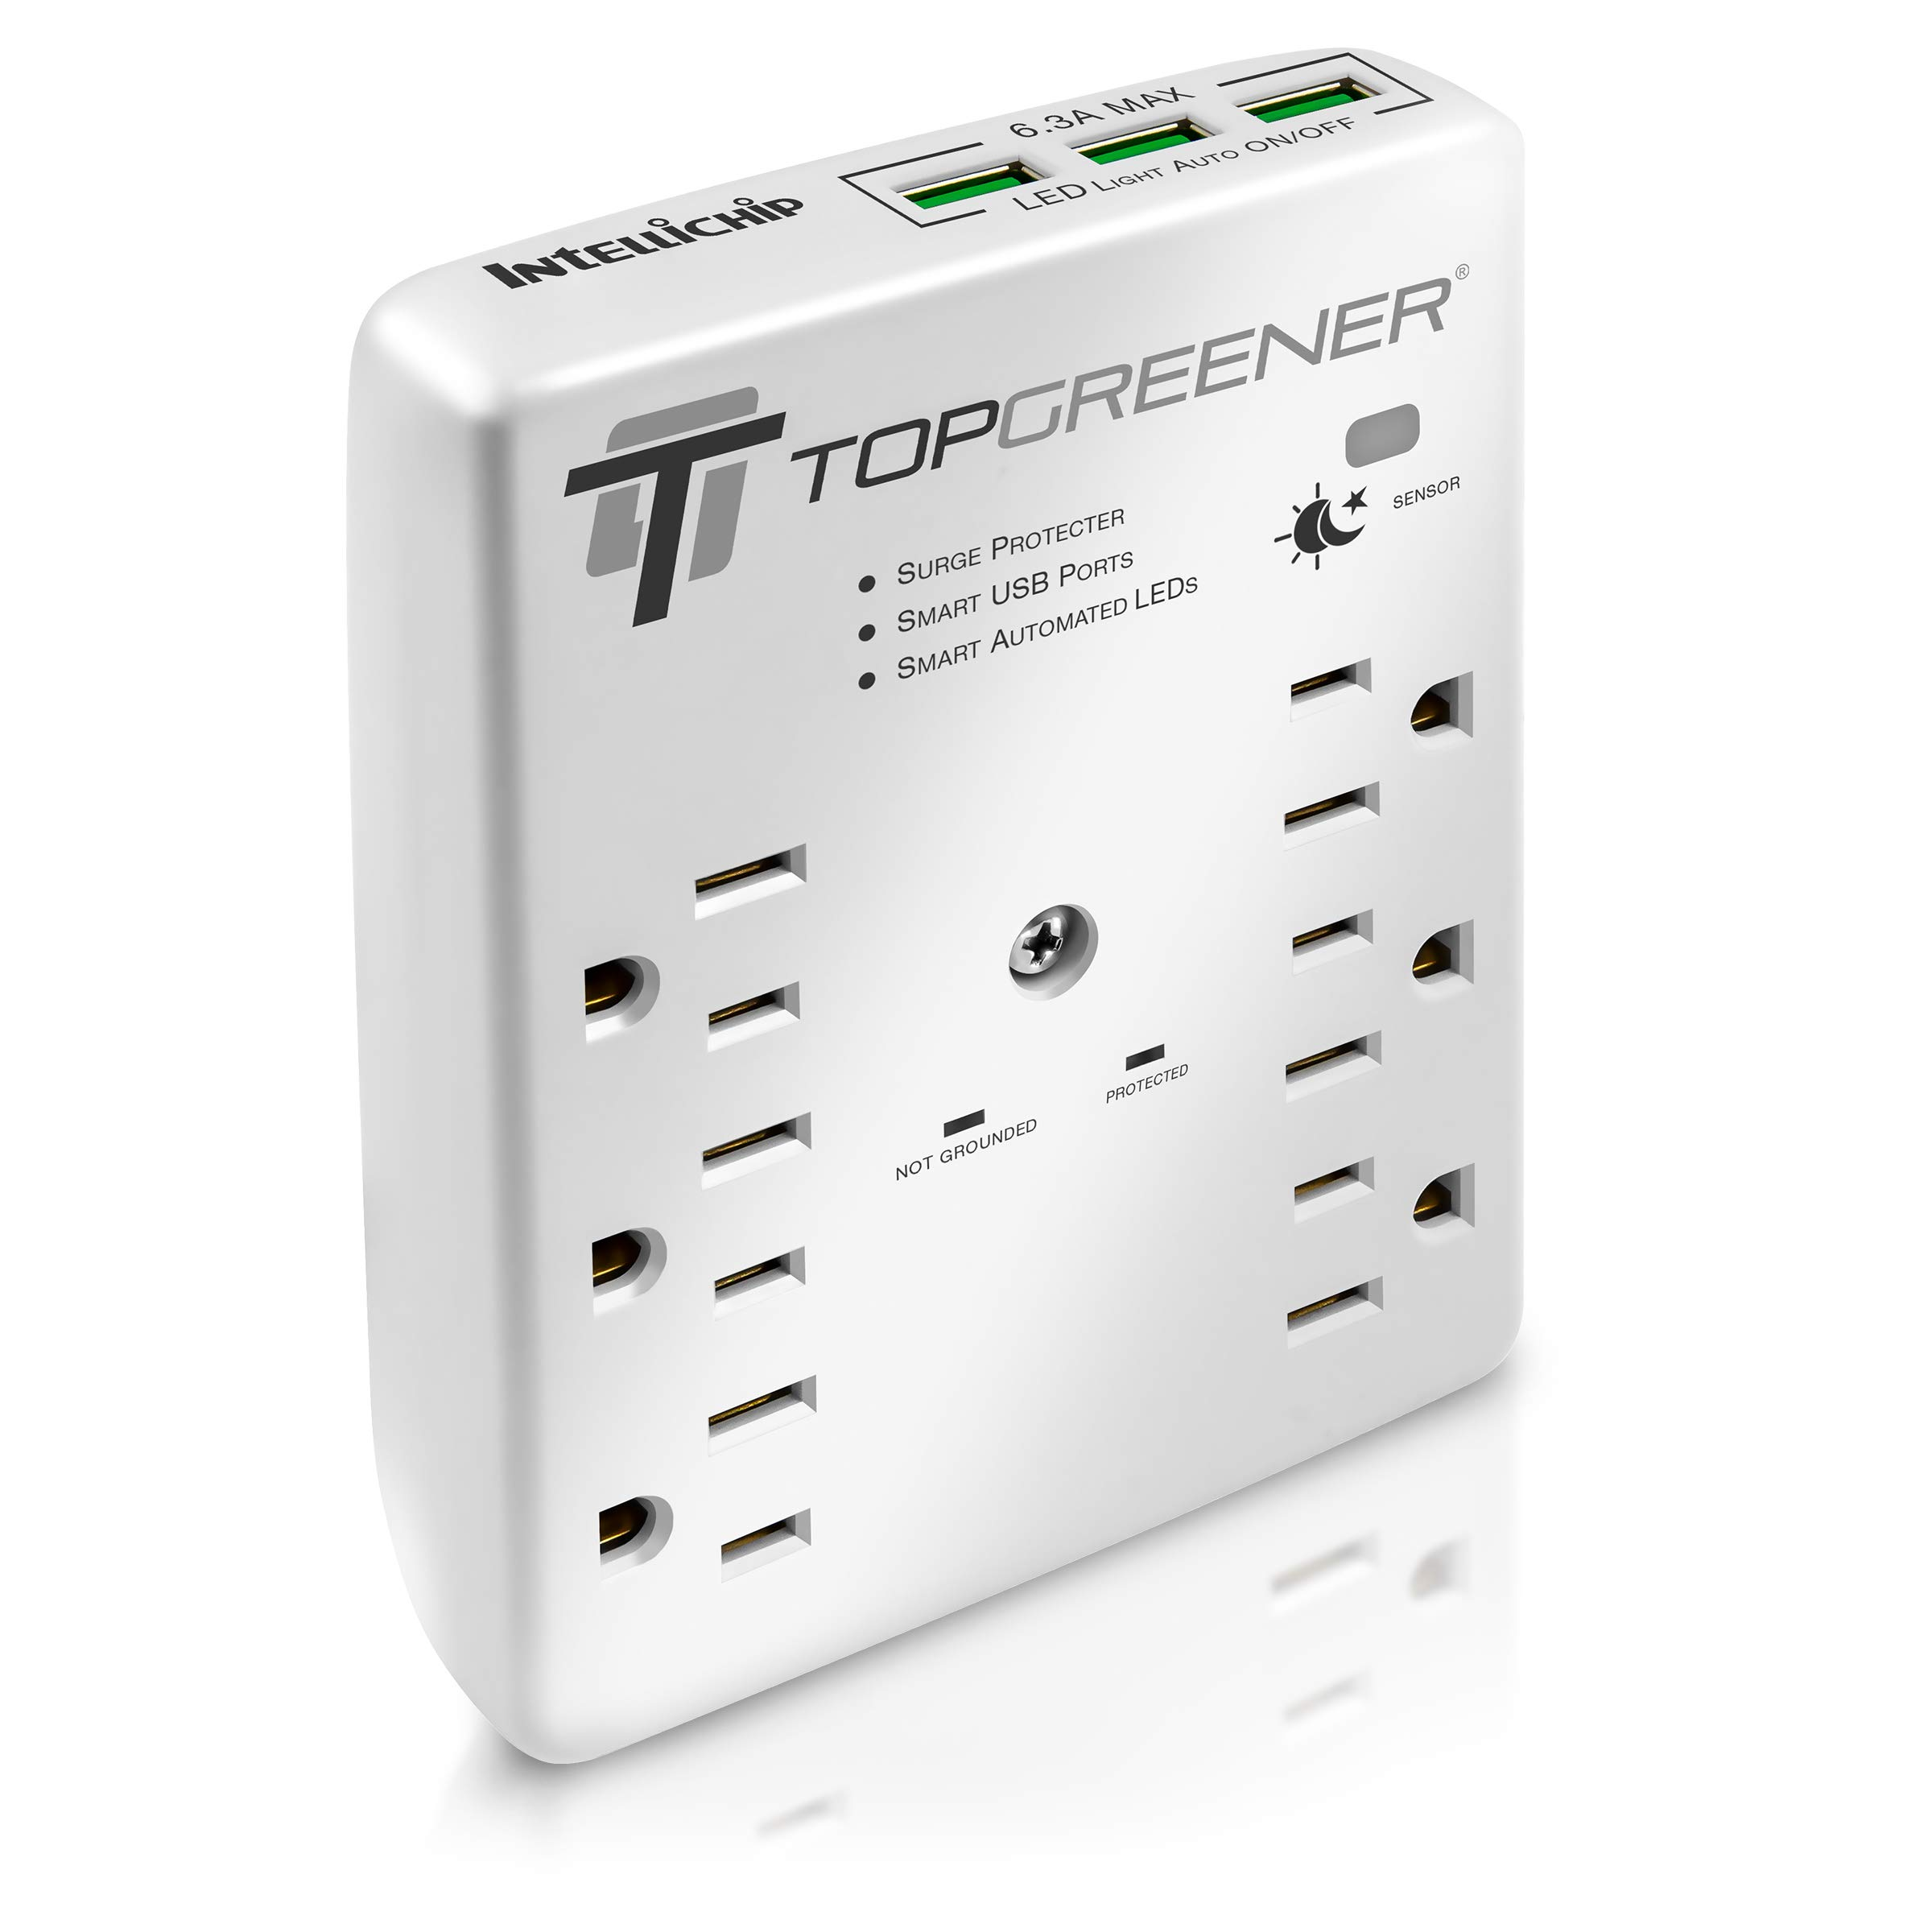 TOPGREENER 6-Outlet Wall Mount Surge Protector Wall Tap, 900 Joules Surge Suppressor, 6.3A USB Ports, Auto Sensor LED Guide Light, 15A 125V Receptacles, TGSP615P68A3, White